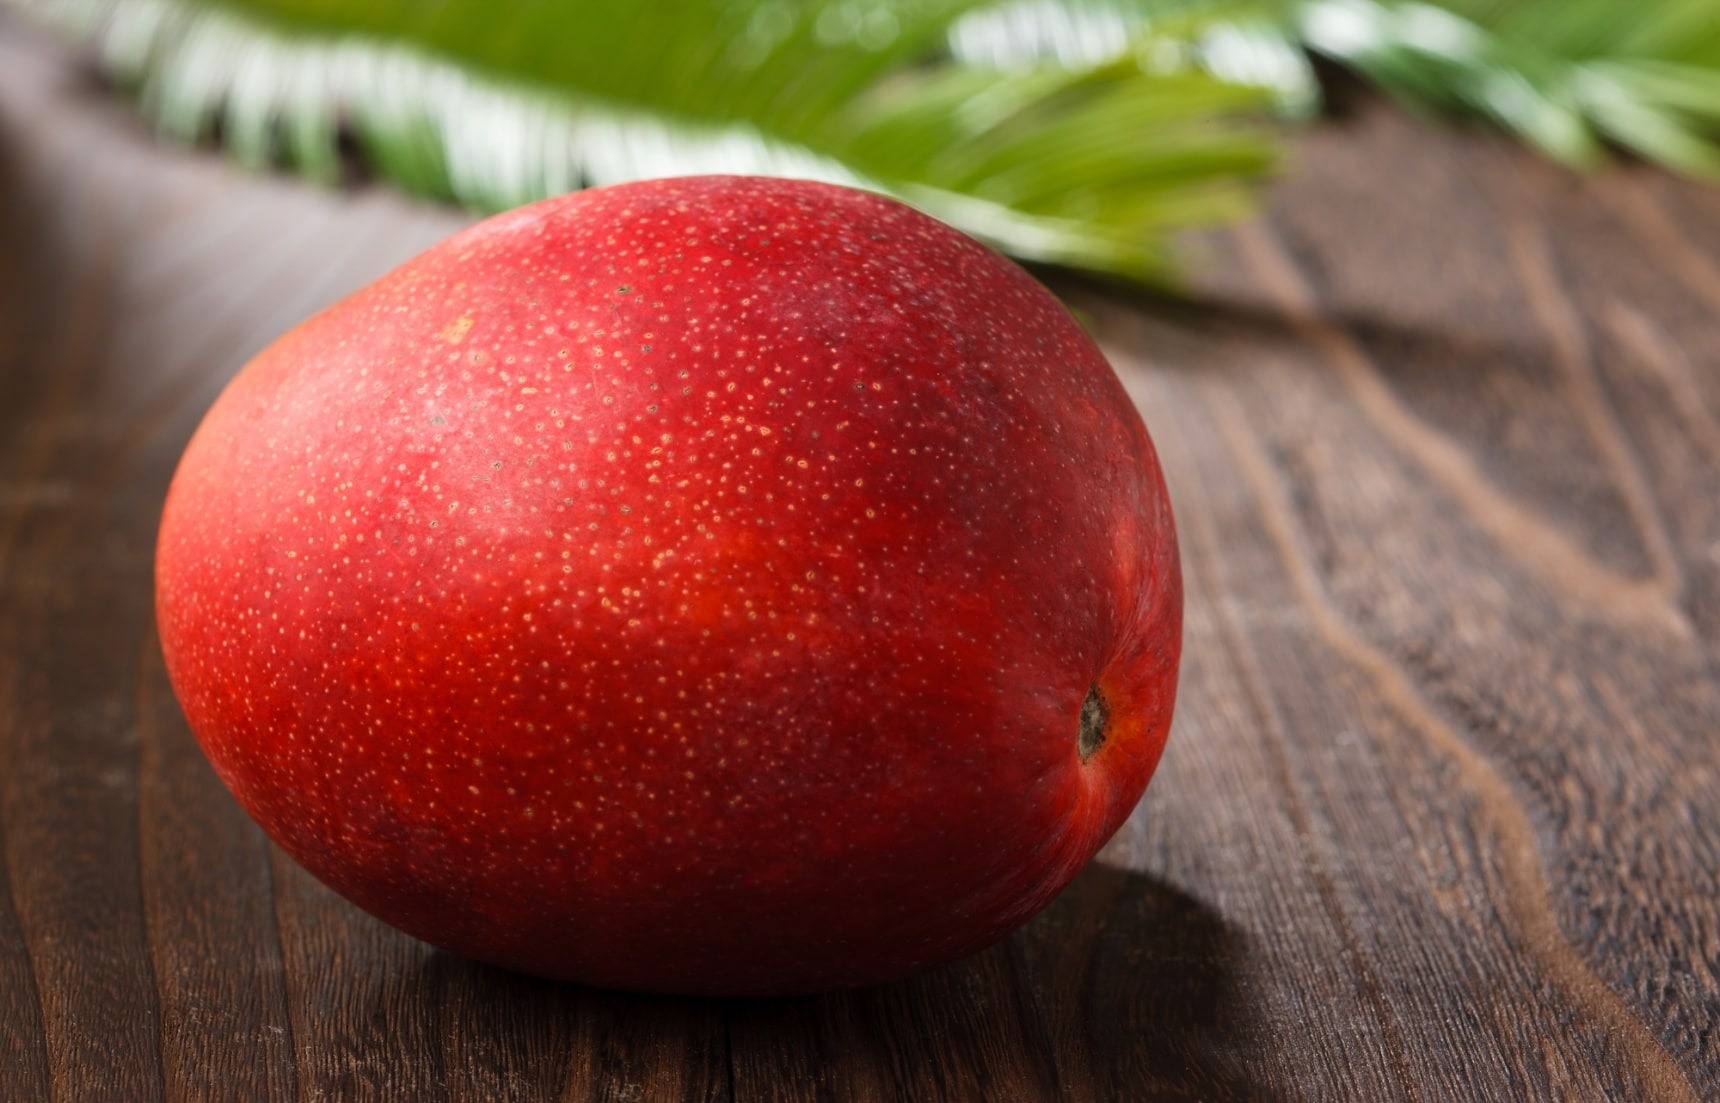 5 Most Expensive Fruits That Are Made in Japan